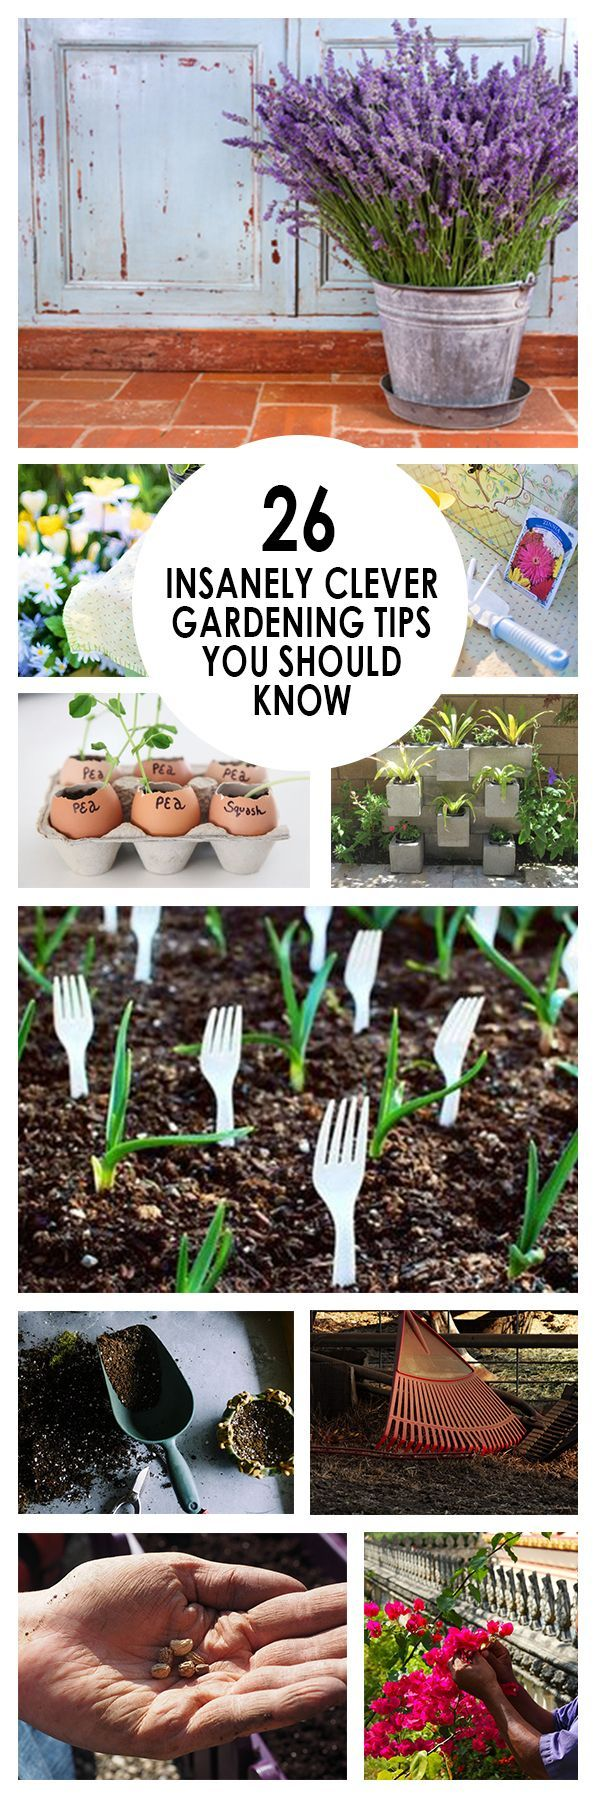 Gardening, home garden, garden s, garden tips and tricks ... on home cleaning tips, home theater tips, photography tips, herb gardening, home security tips, container gardening, gardening guides, home sports, home beauty tips, home exercise tips, home fitness, home safety tips, flower gardening, organic gardening, home remodeling tips, landscaping tips, home decor tips, real estate tips, home business tips, home projects, home diy tips, parenting tips, home garden tips, home recycling tips, vertical gardening, home design tips,